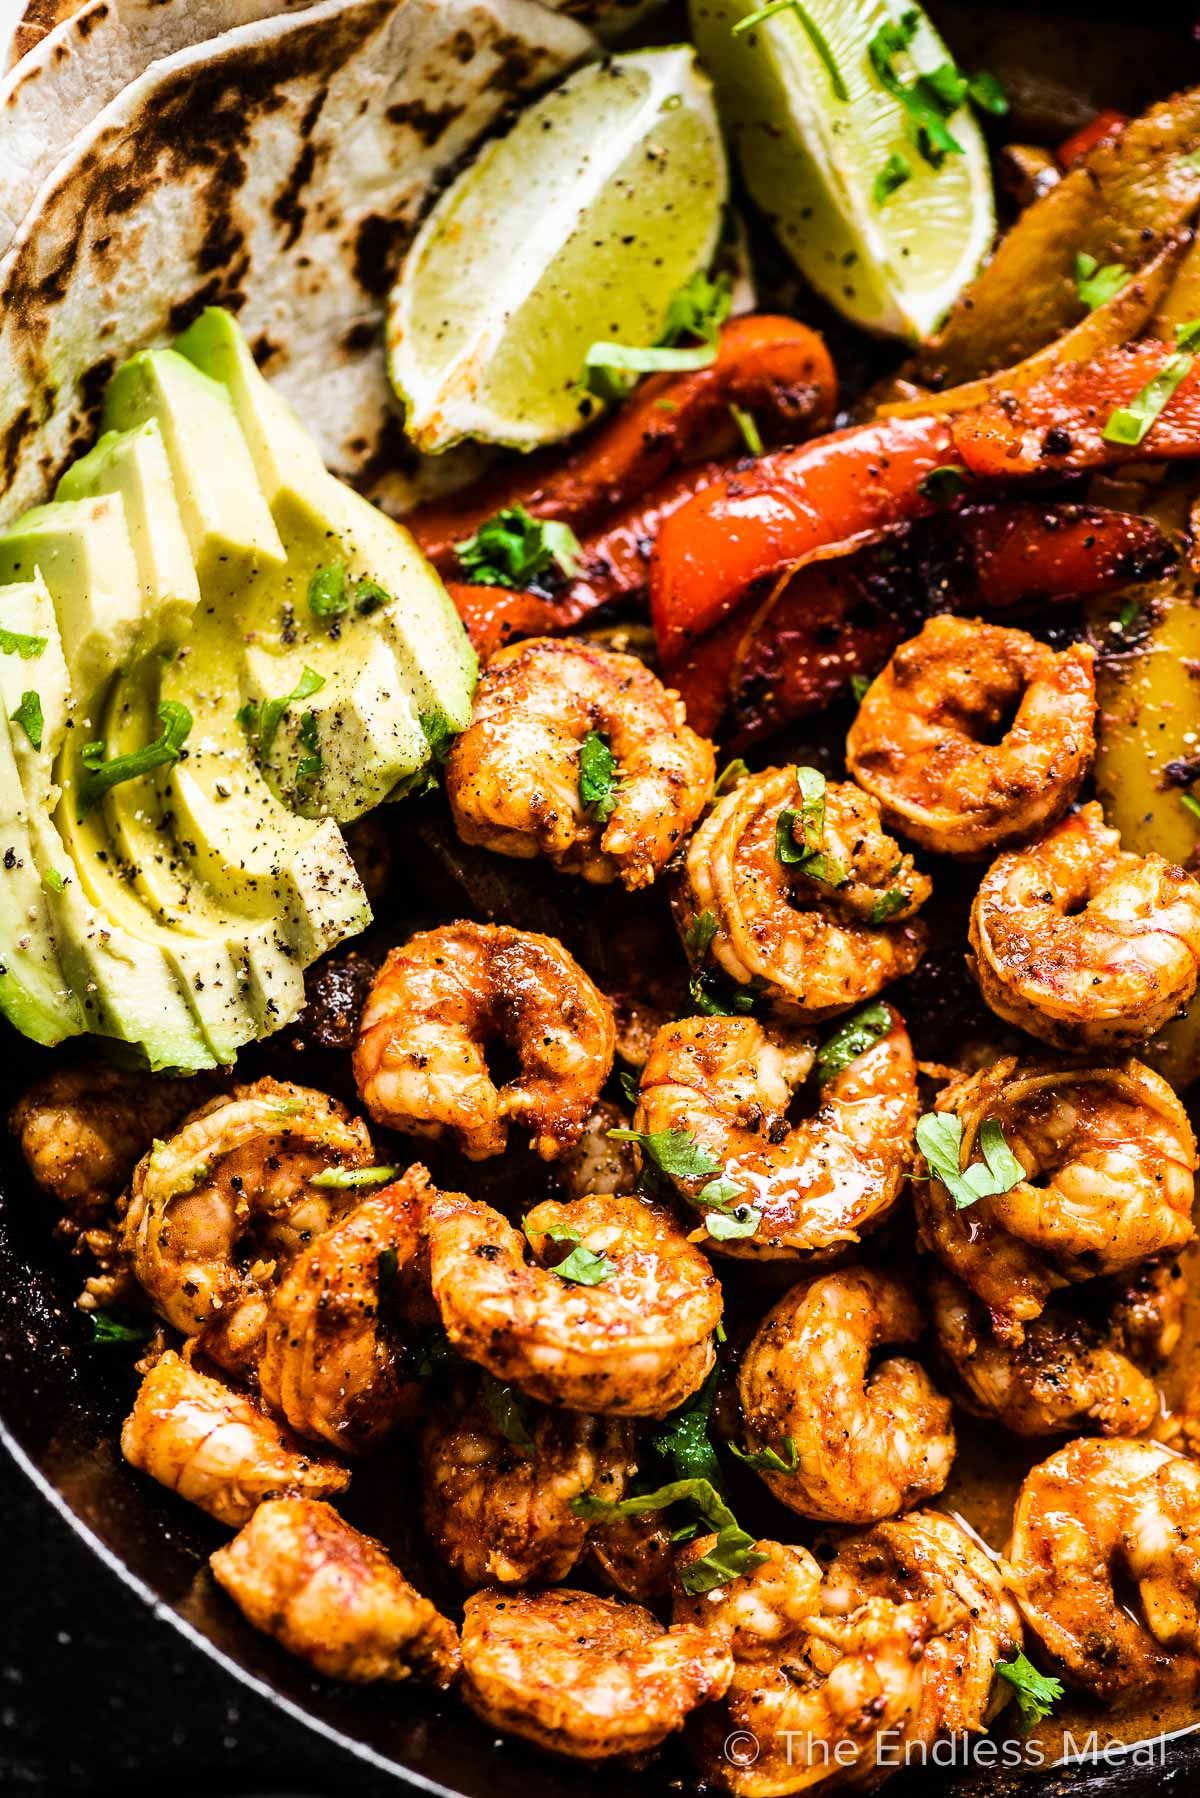 A close up of shrimp fajitas in a pan with avocado and limes.